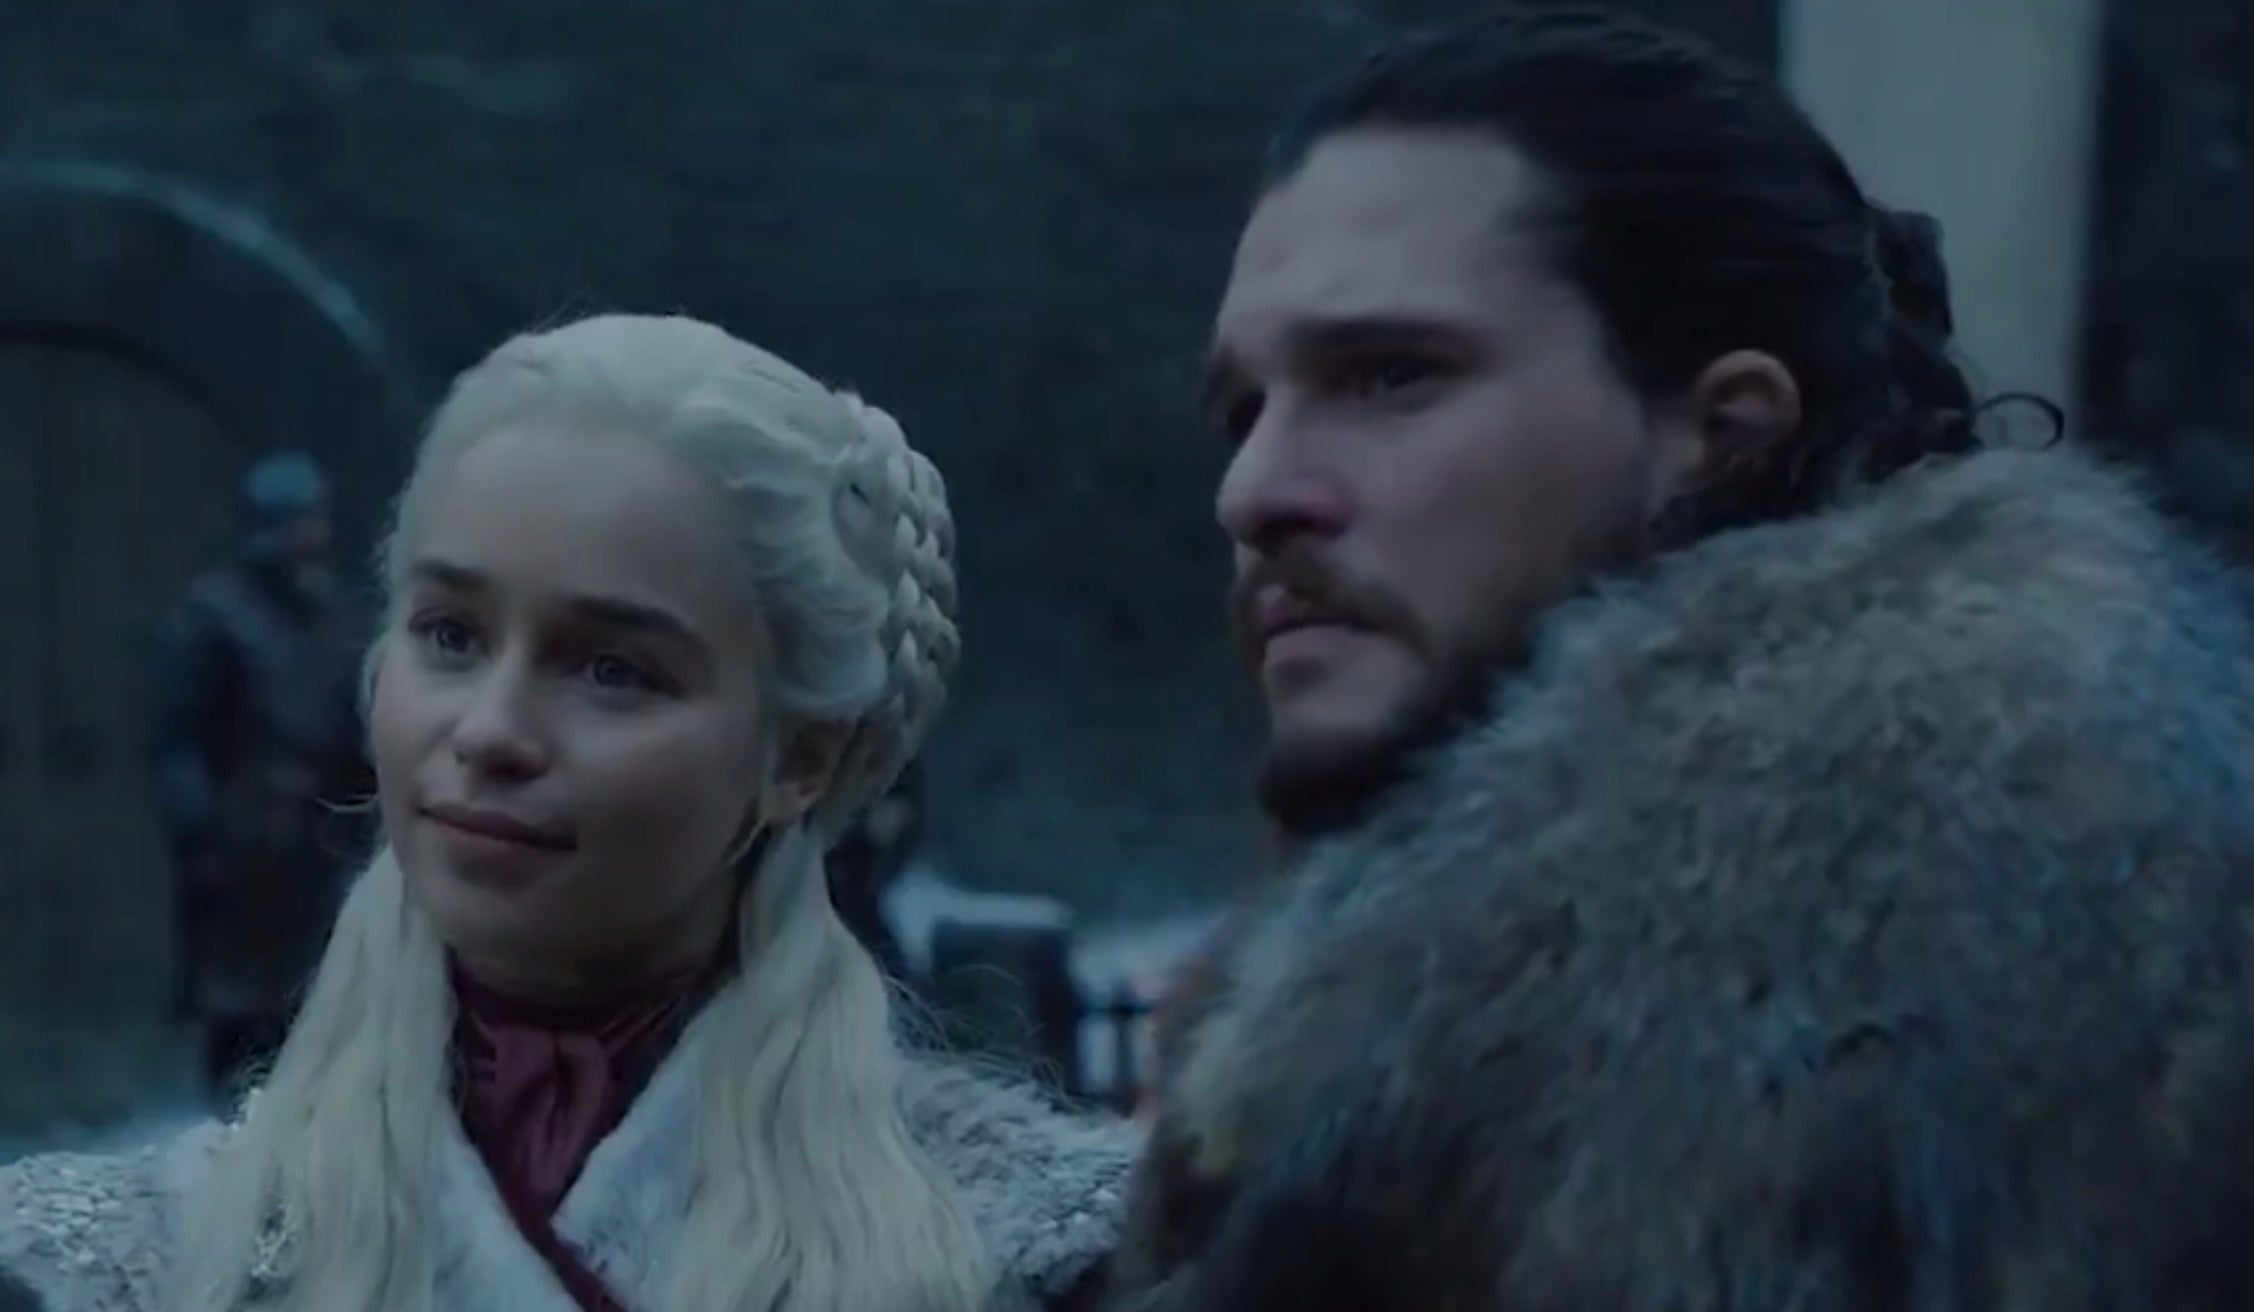 Here's Your First Look At The Final Season Of Game Of Thrones, And Watchmen Too